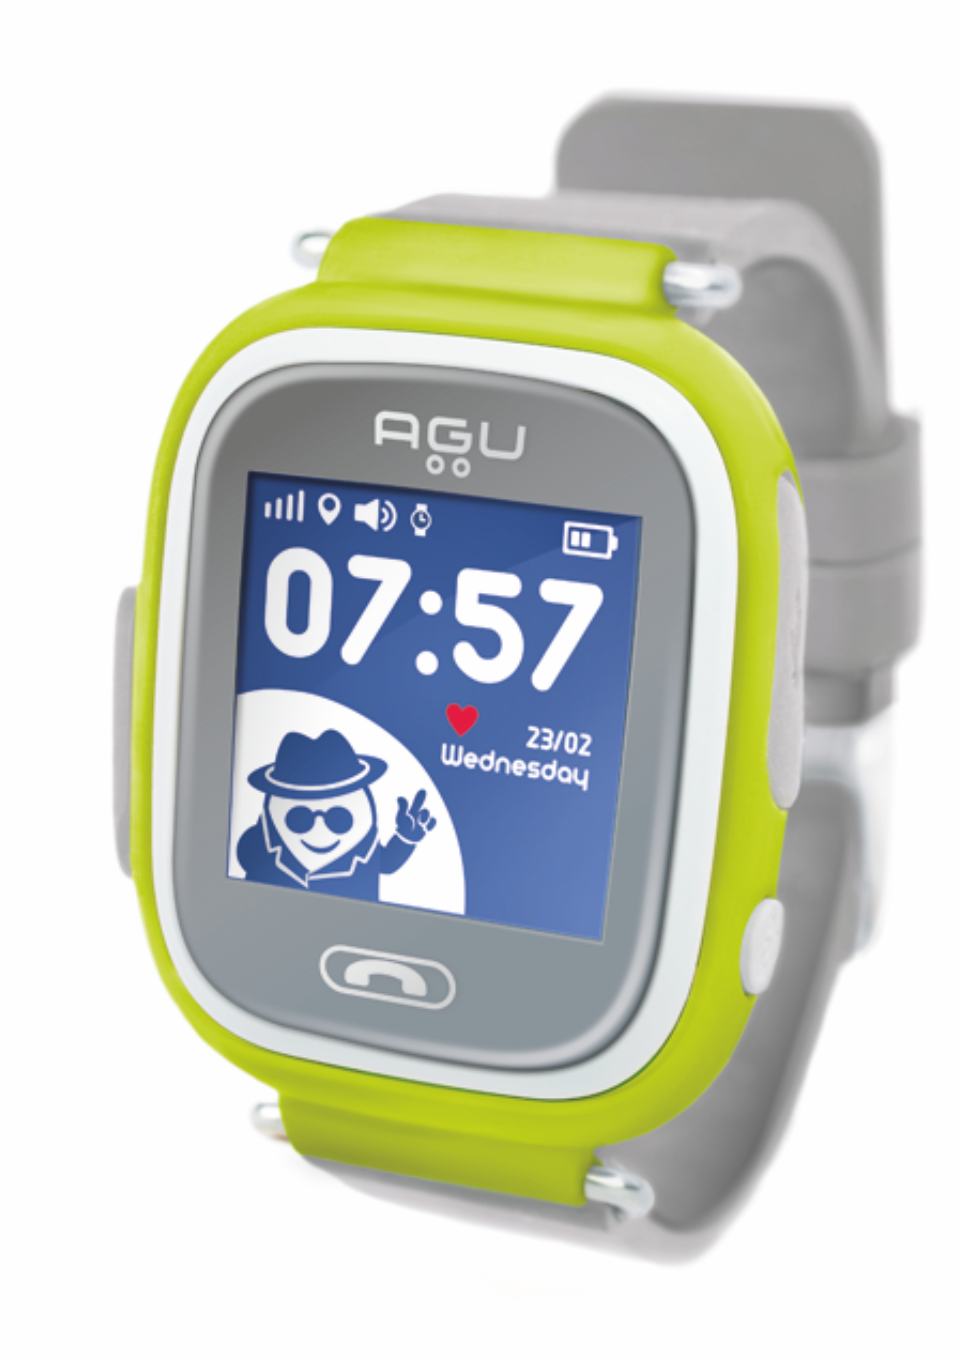 http://f.igtrend.kz/products/000/983/gps_watch.png